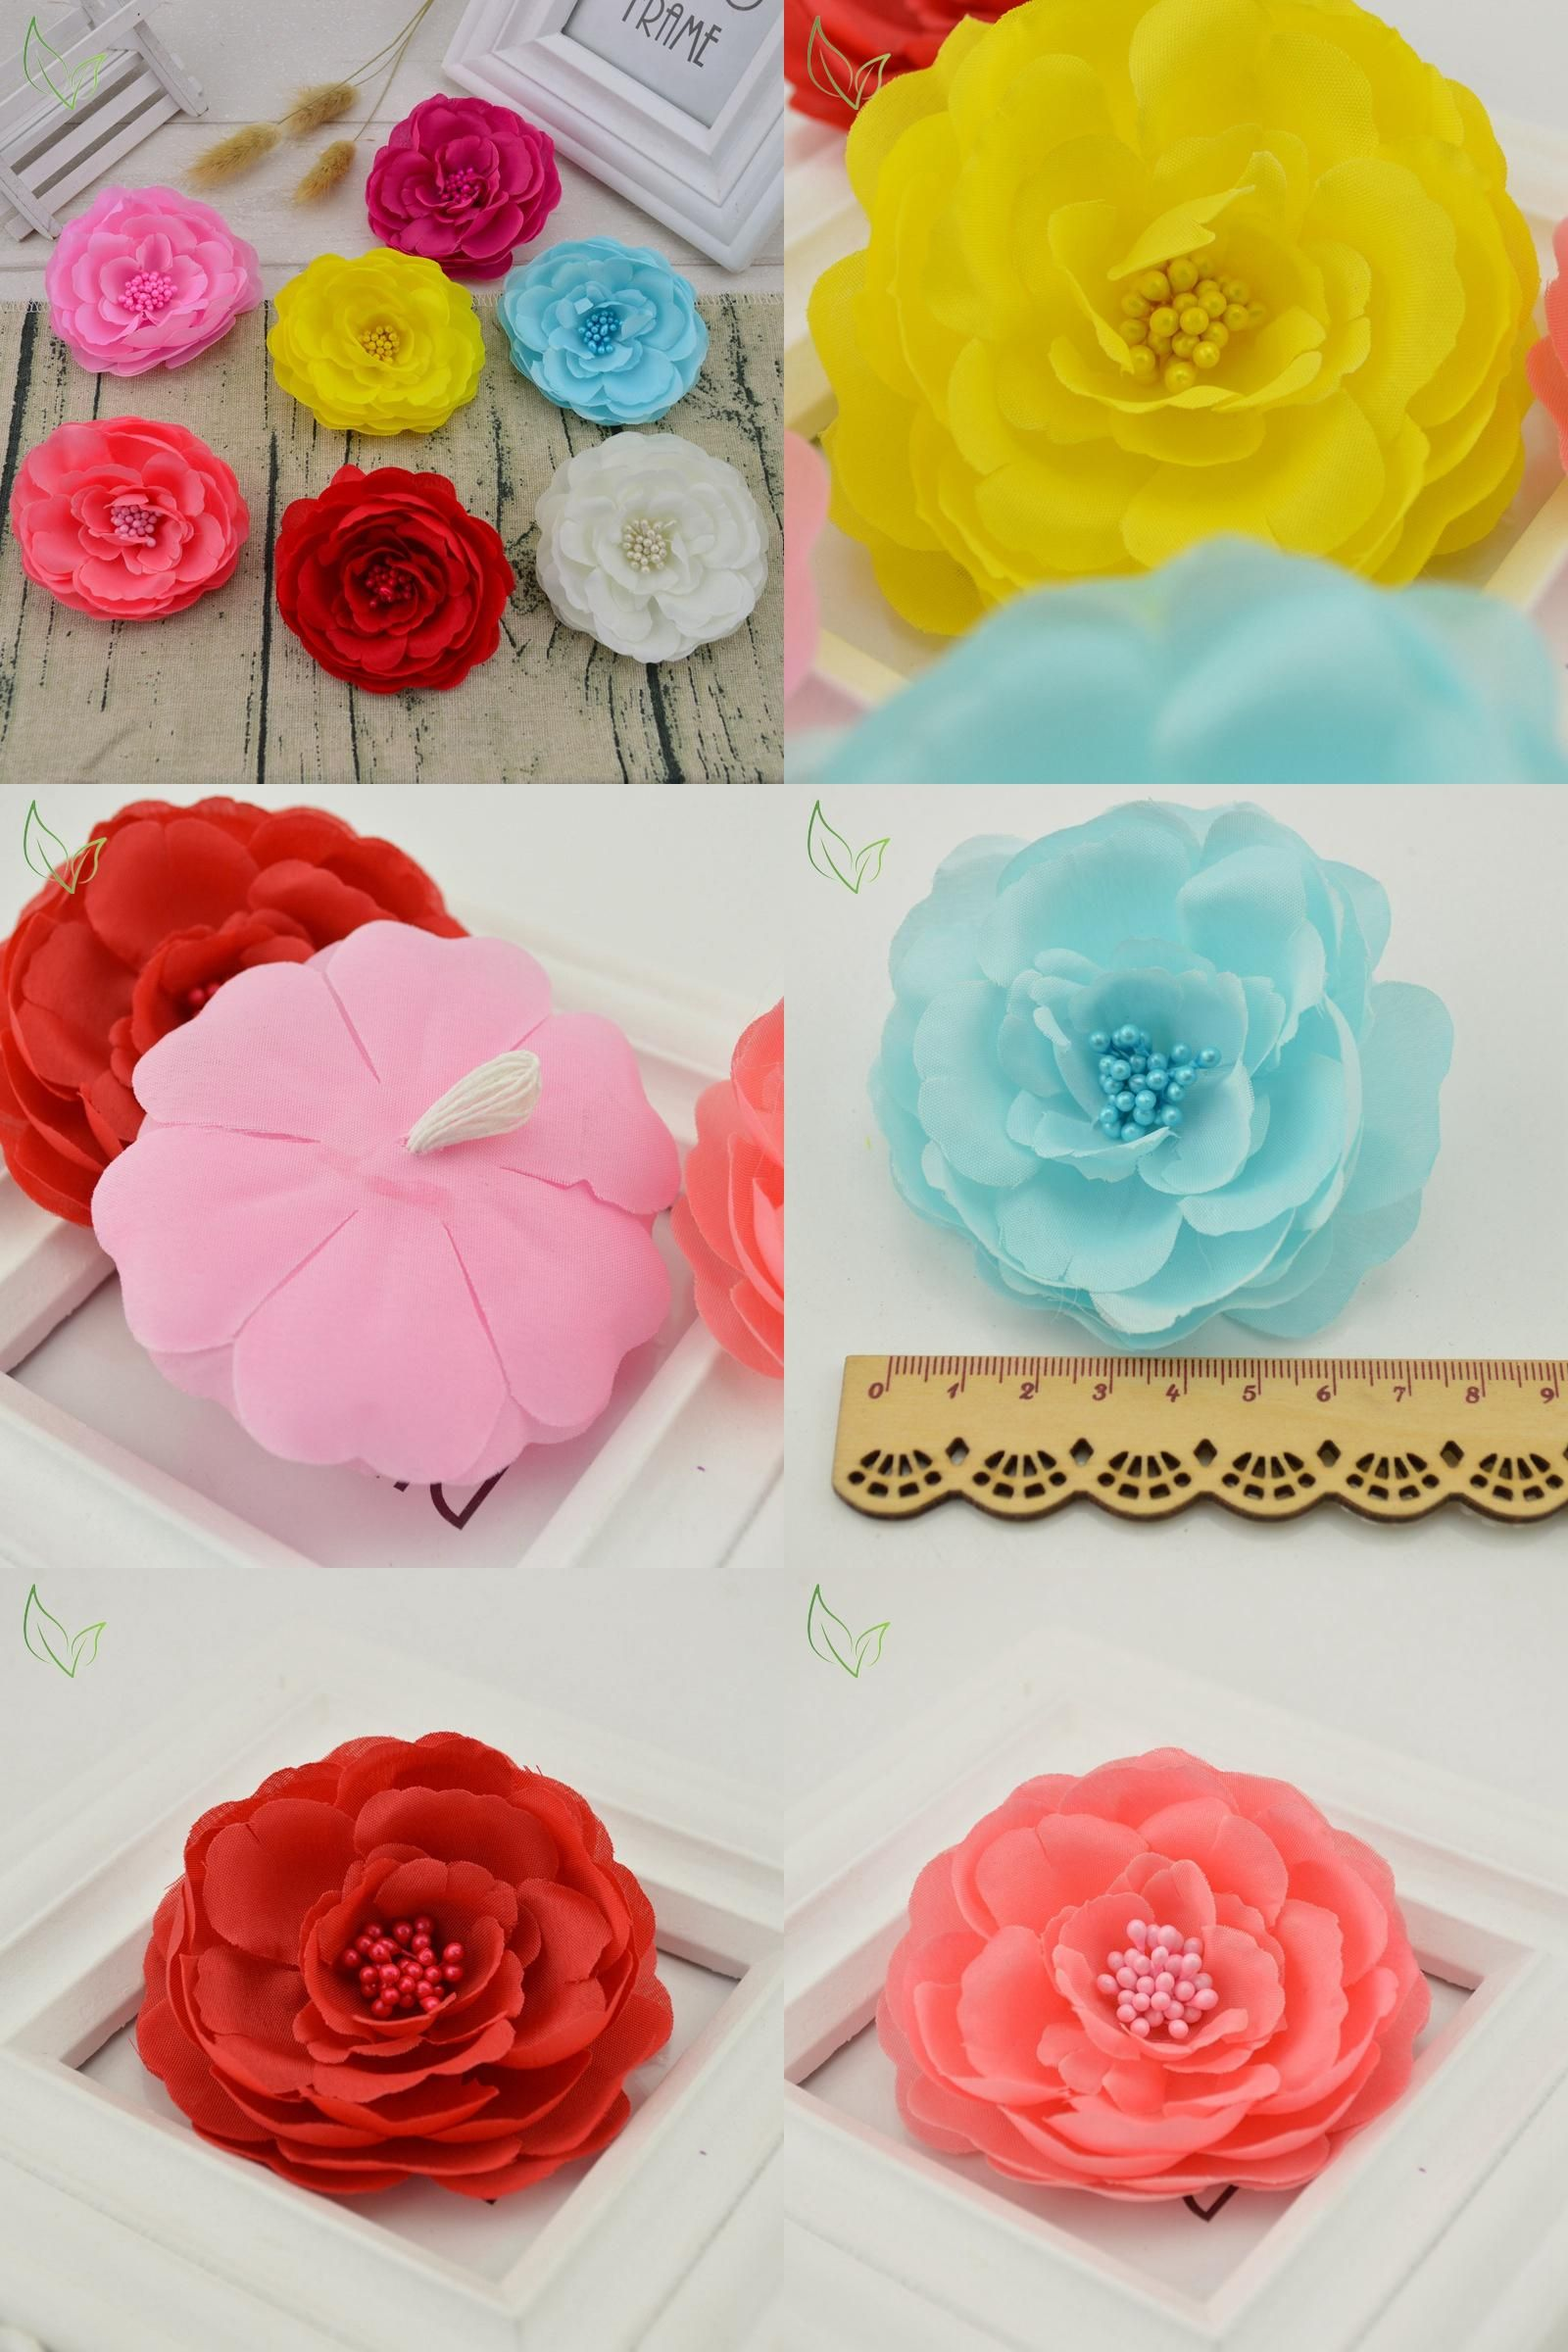 Visit To Buy 7 Cm Silk Fake Flower Dried Camellia Artificial